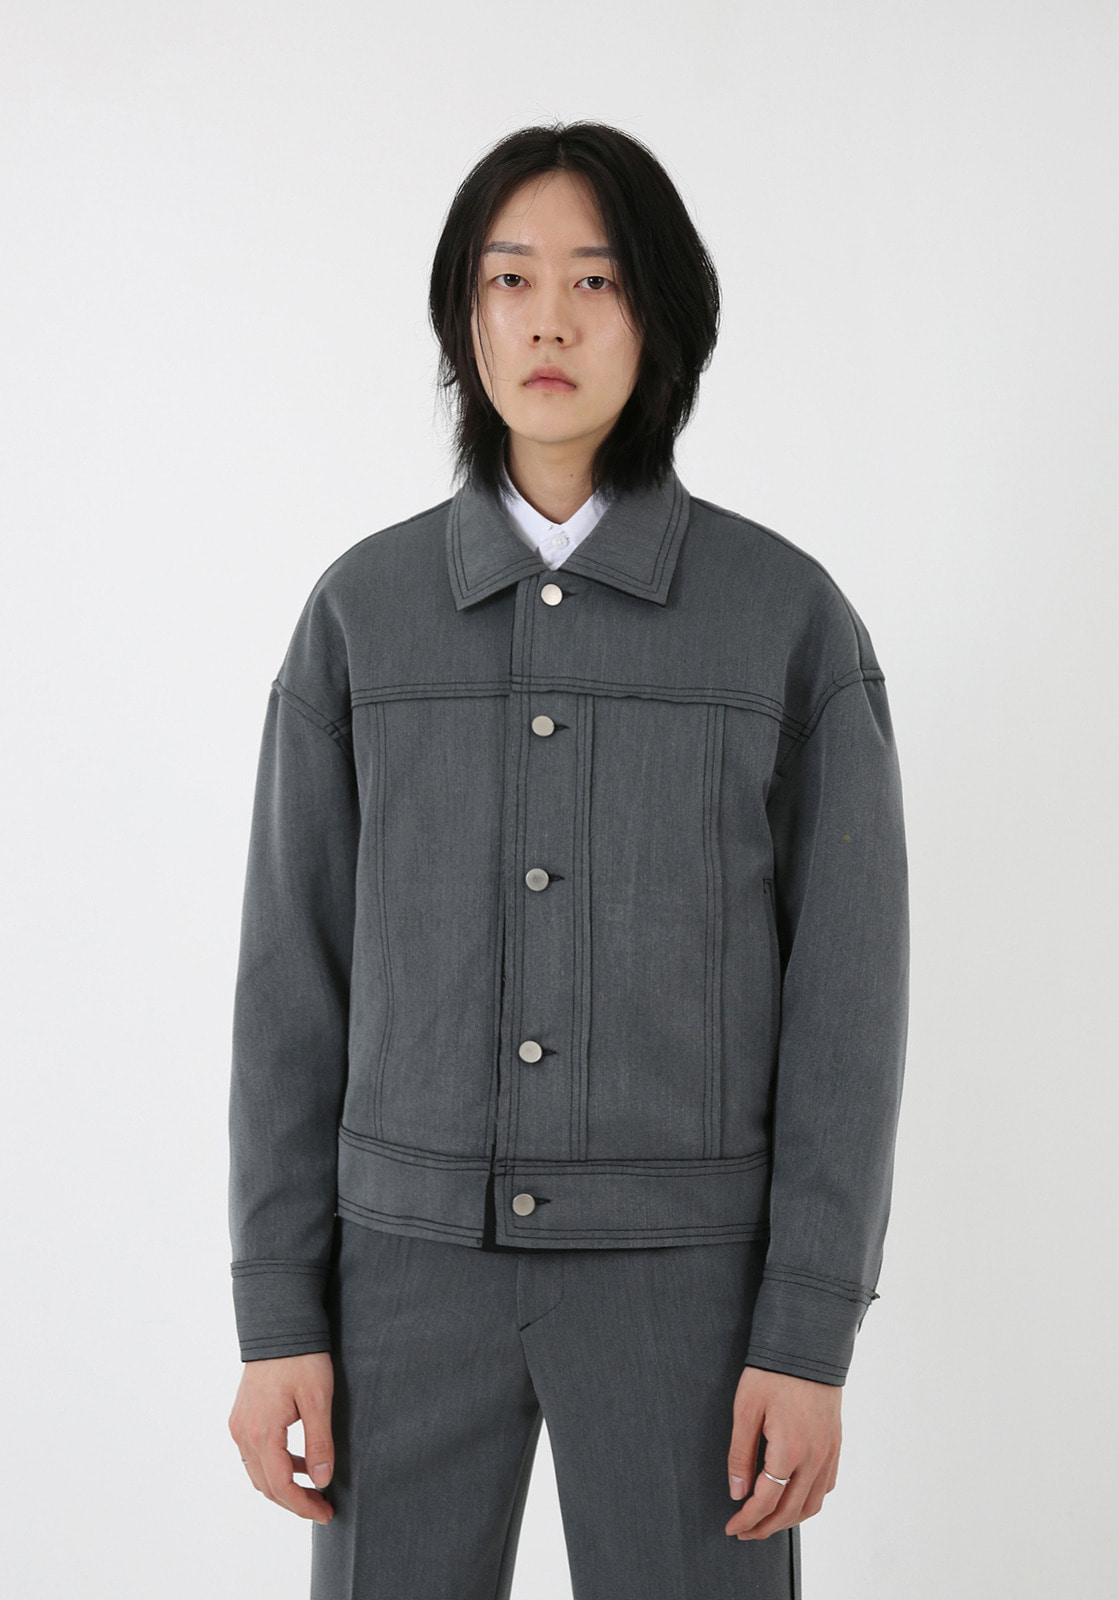 V664 MOROS CUTTING JACKET  GRAY